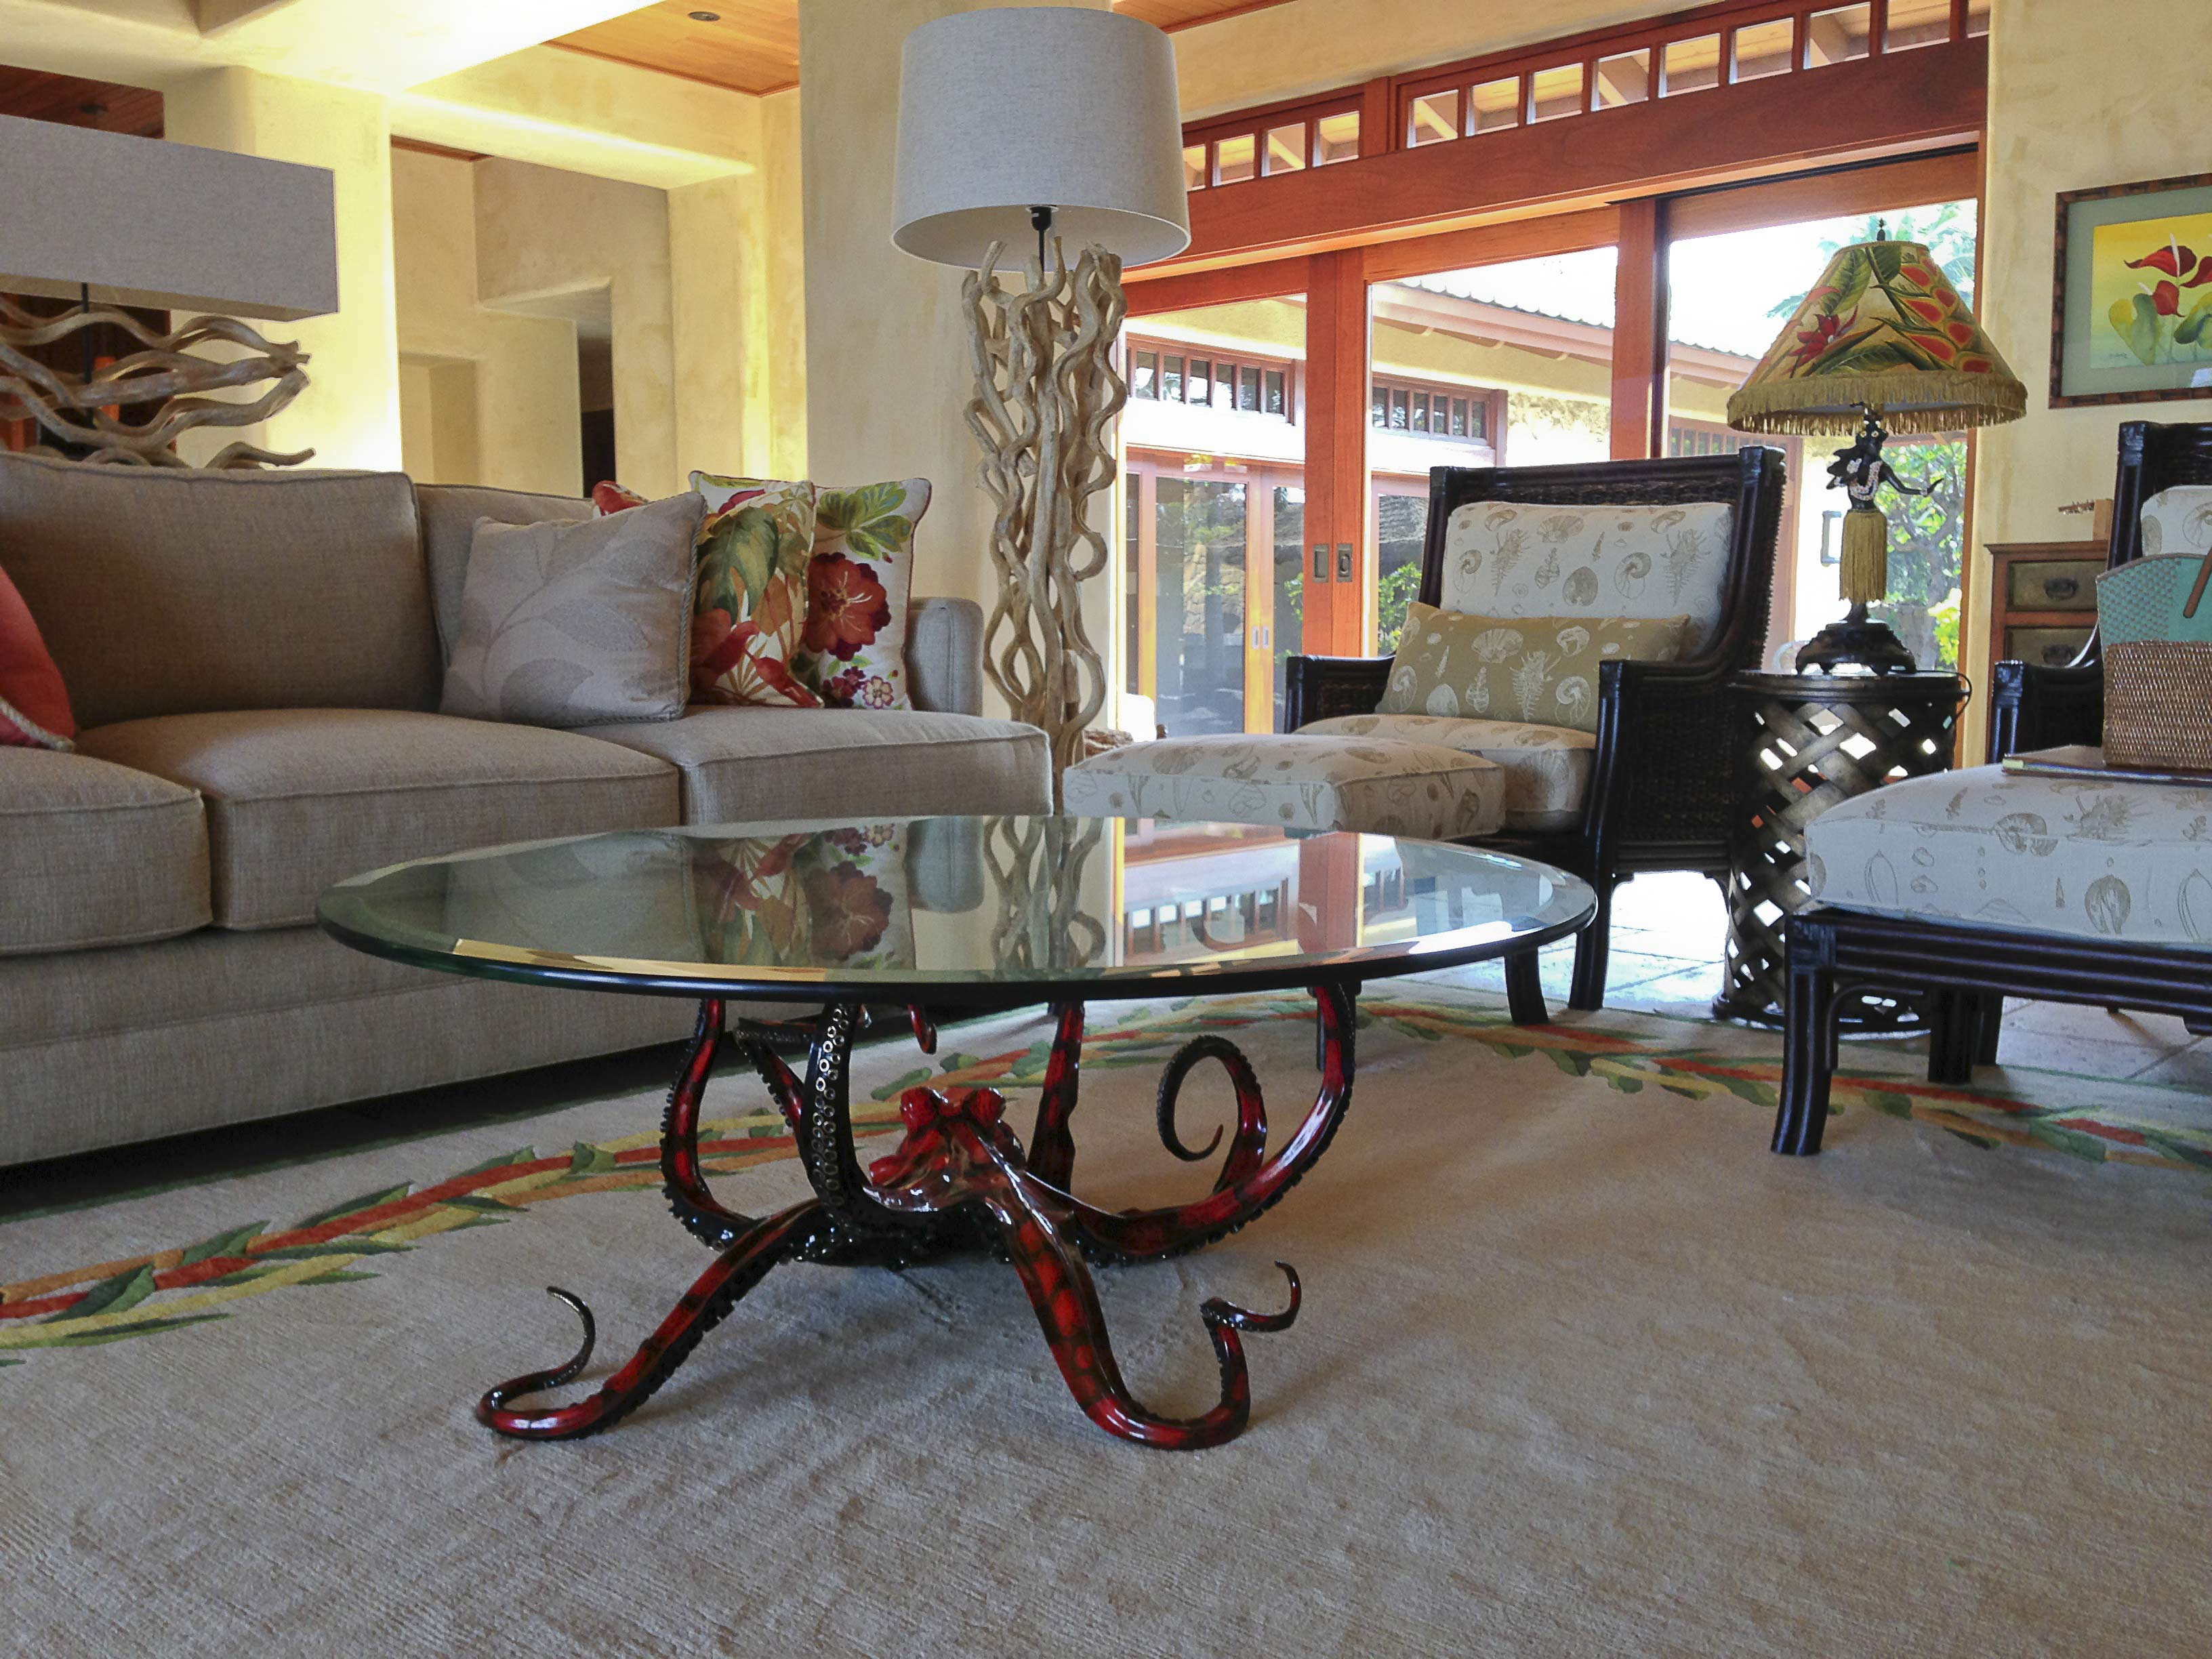 round octopus coffee table | raysa house